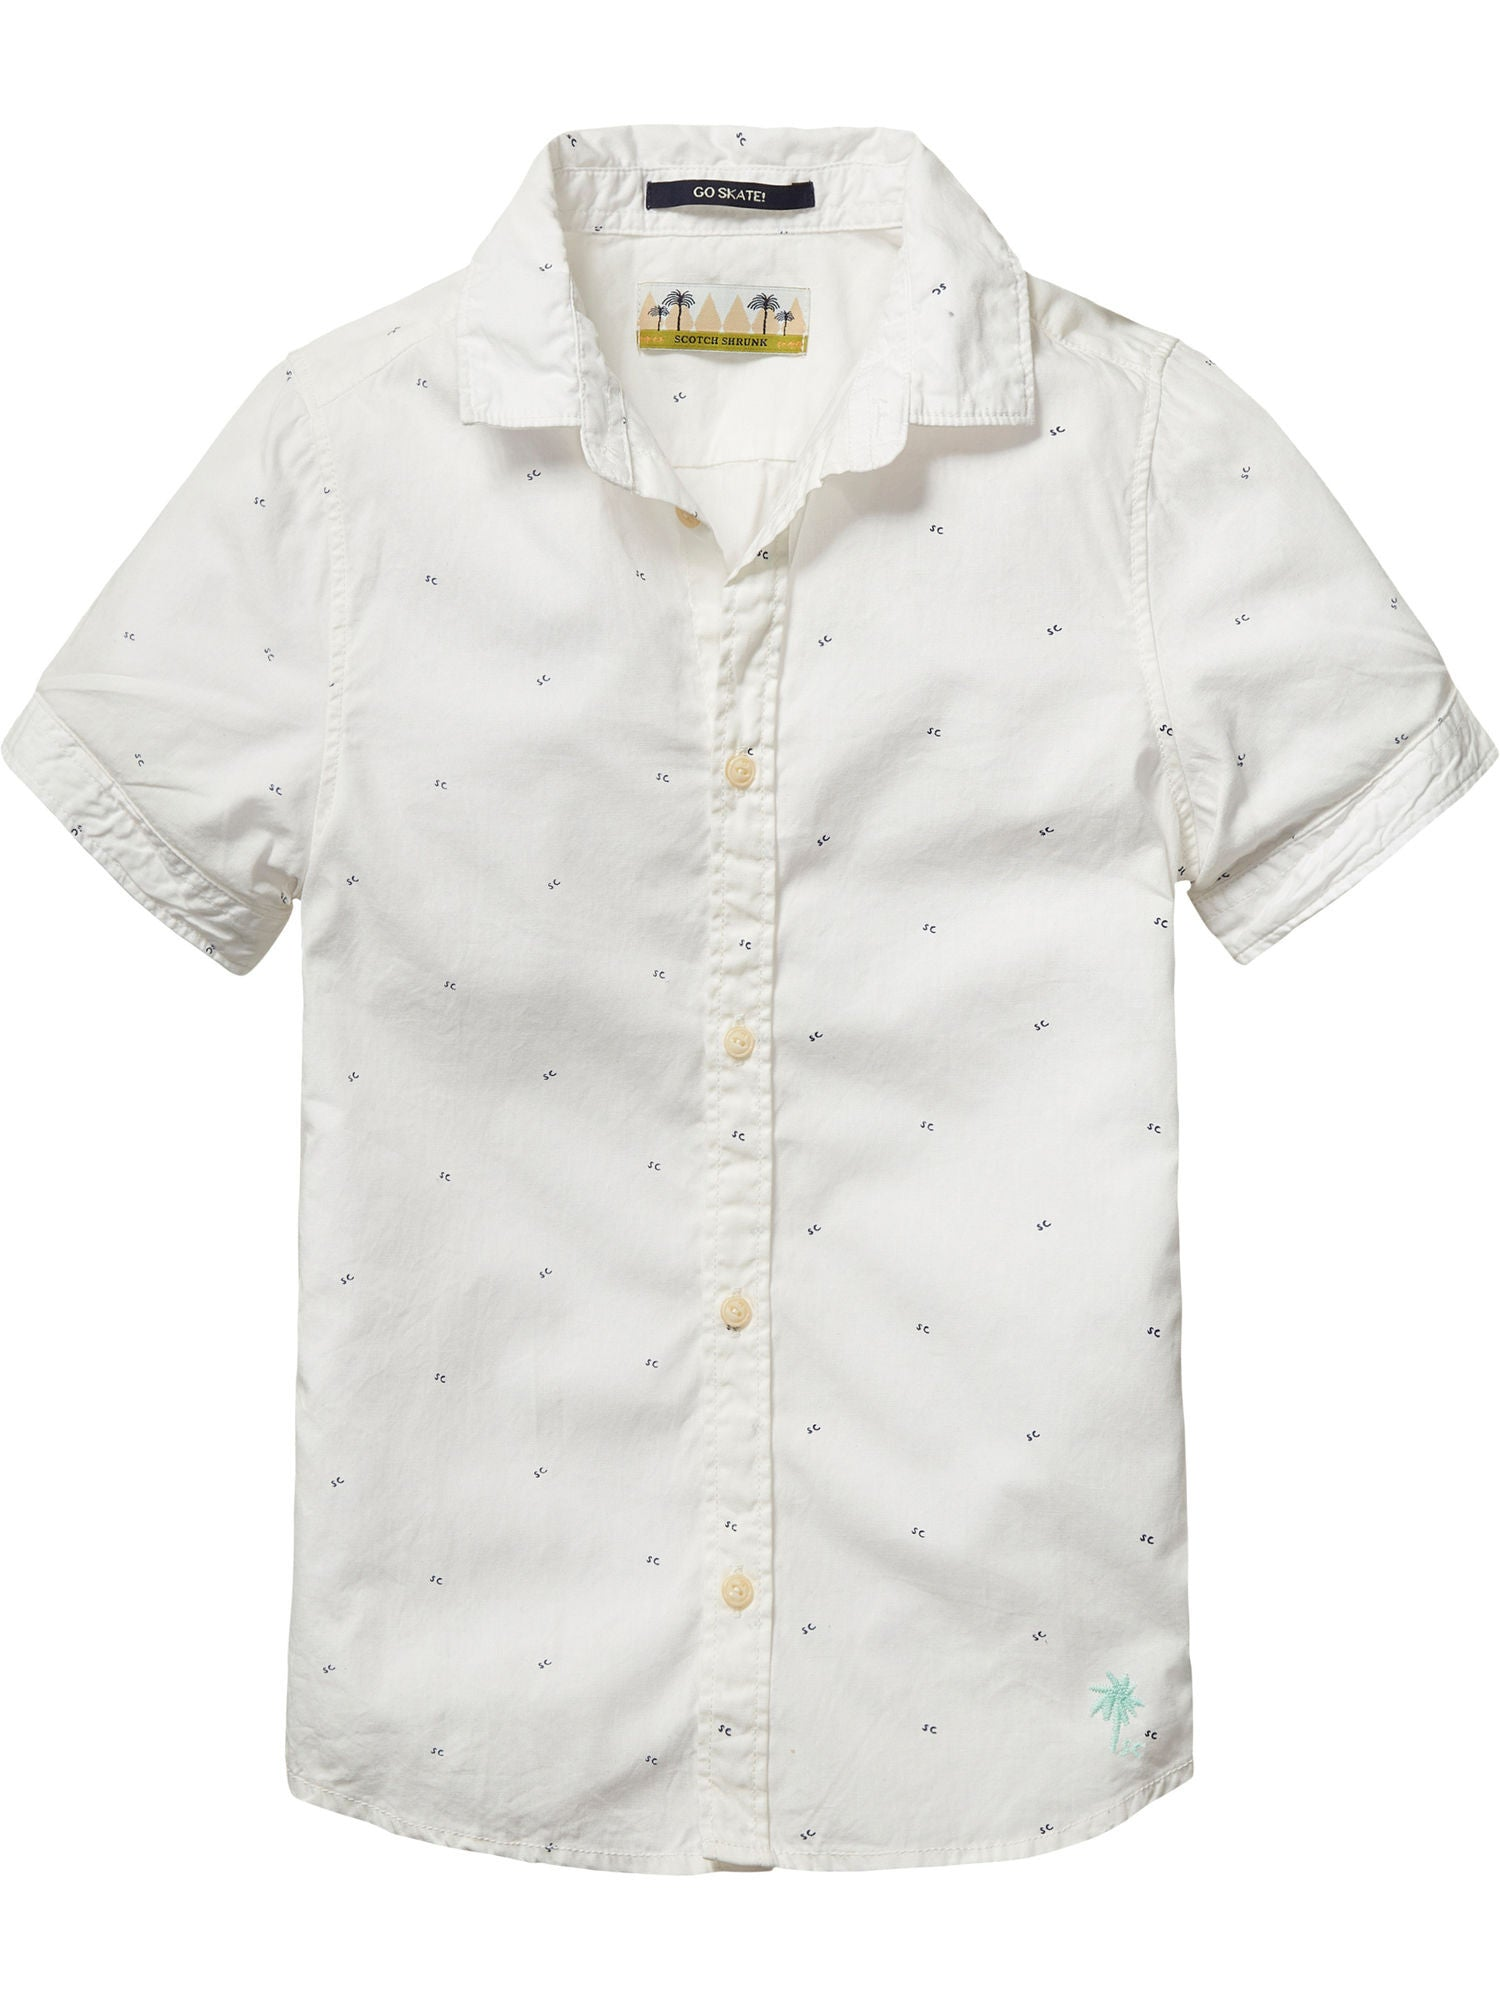 Street White Scotch Shirt Kids Shrunk – Cinnamon Basic 35uF1JclKT